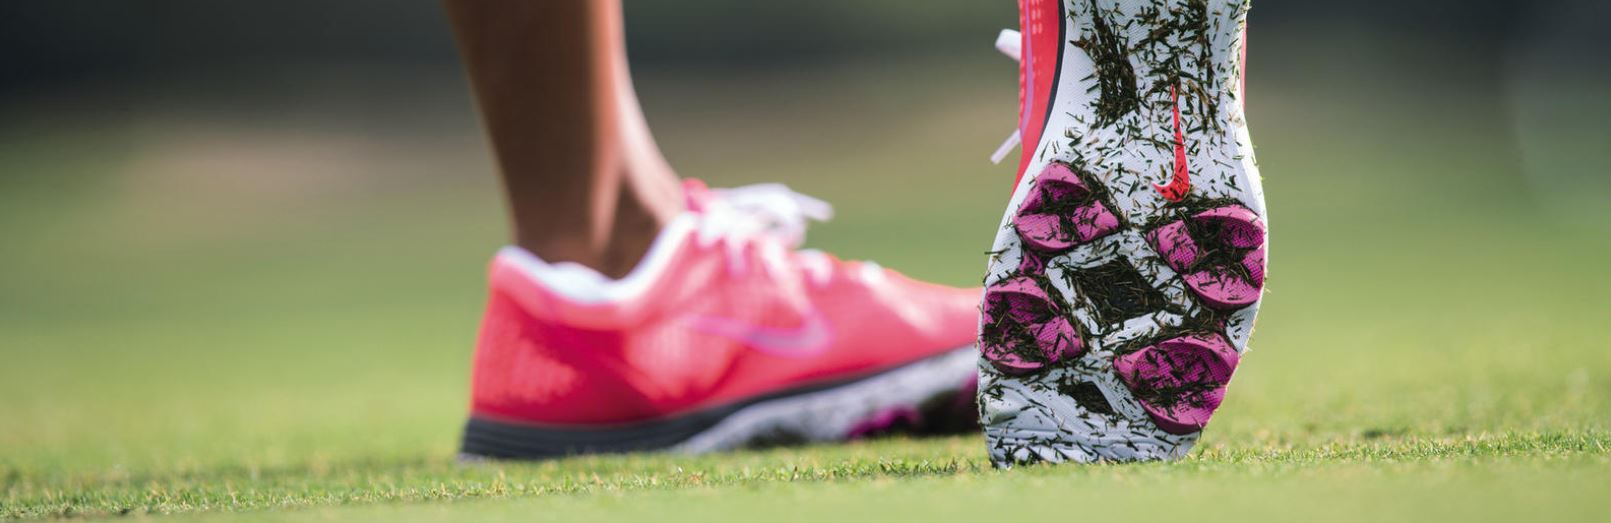 Nike Womens PInk Golf Shoes